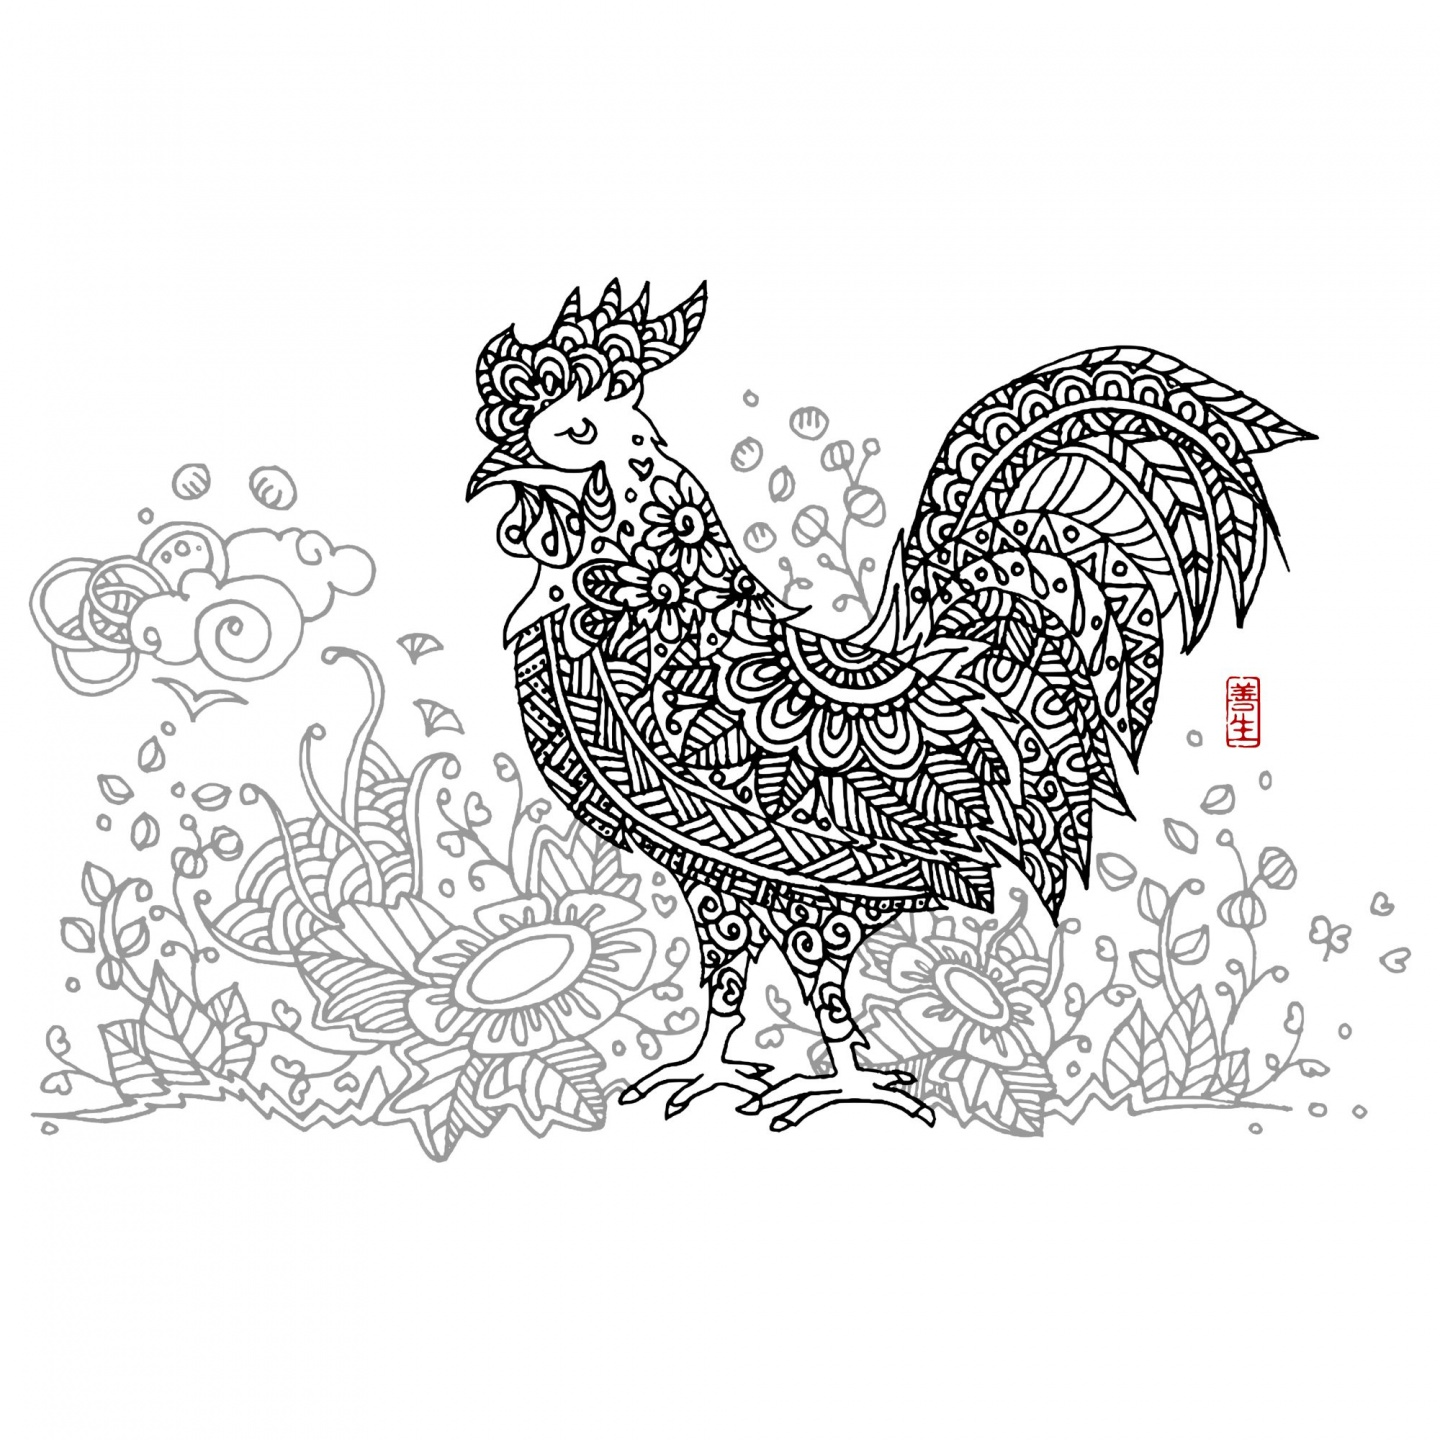 Chinese zodiac : ROOSTER